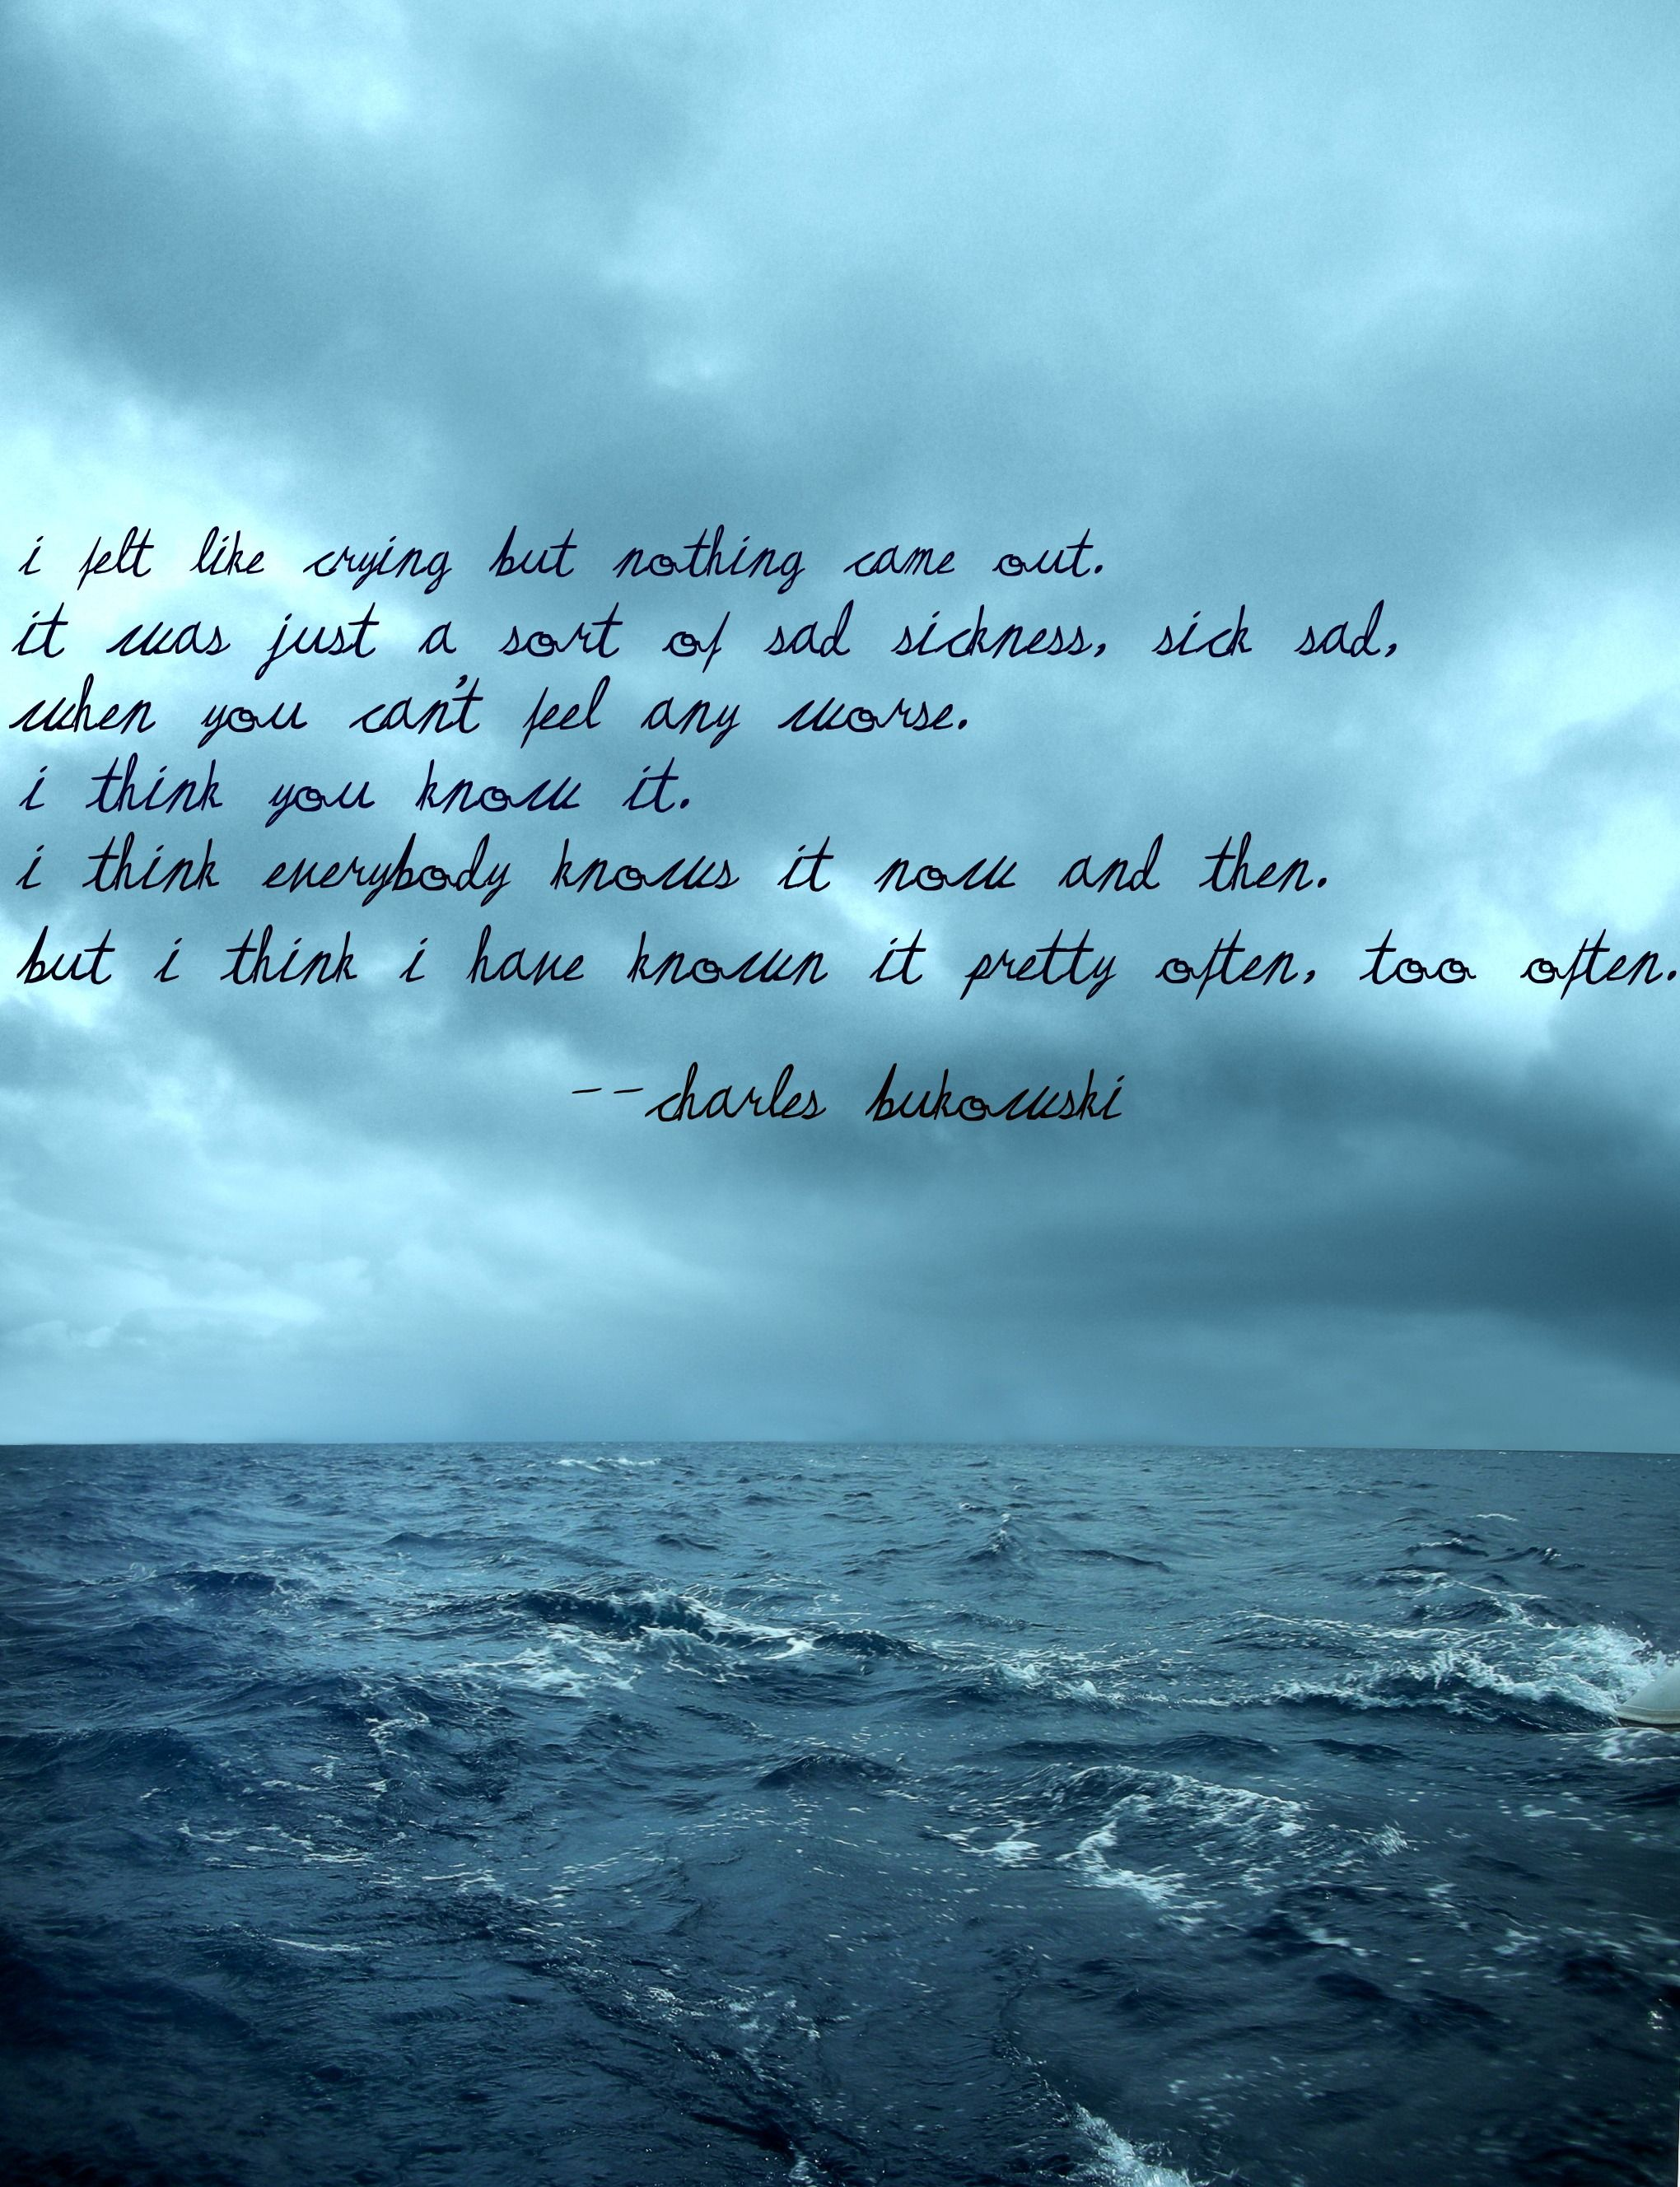 There's something really beautiful about this quote-picture combo.